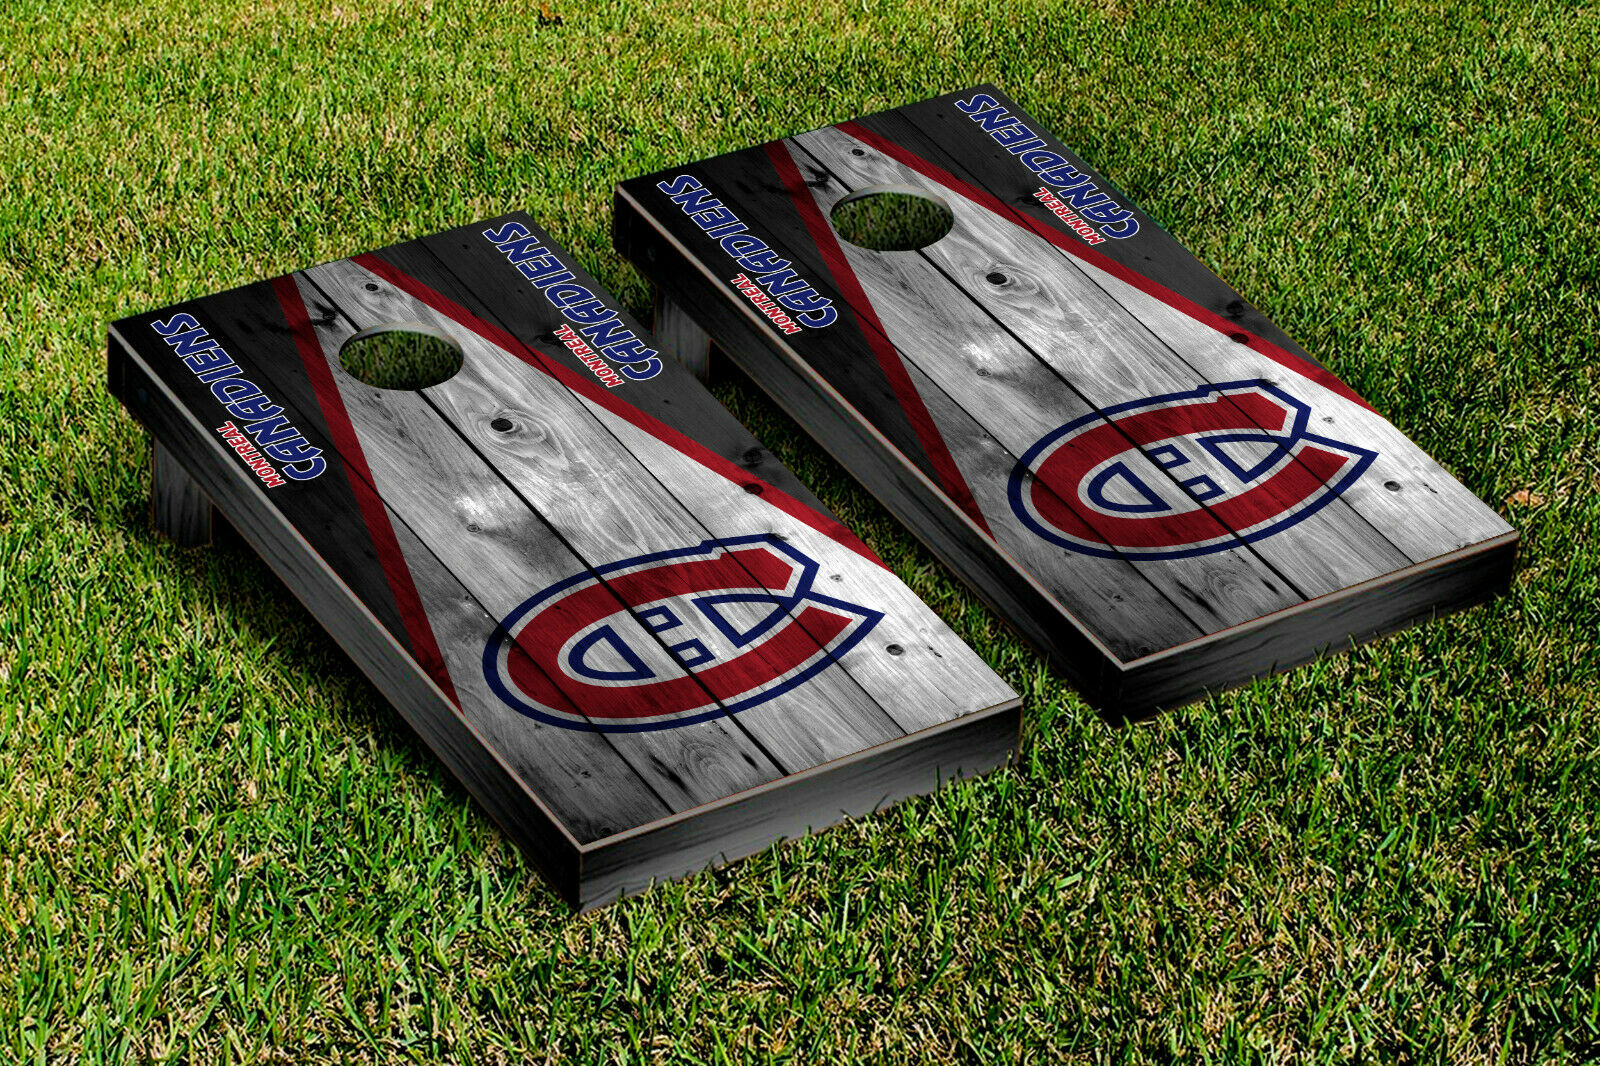 Montreal Canadiens Cornhole Wrap Vinyl Sheets For Wrapping Cornhole Boards